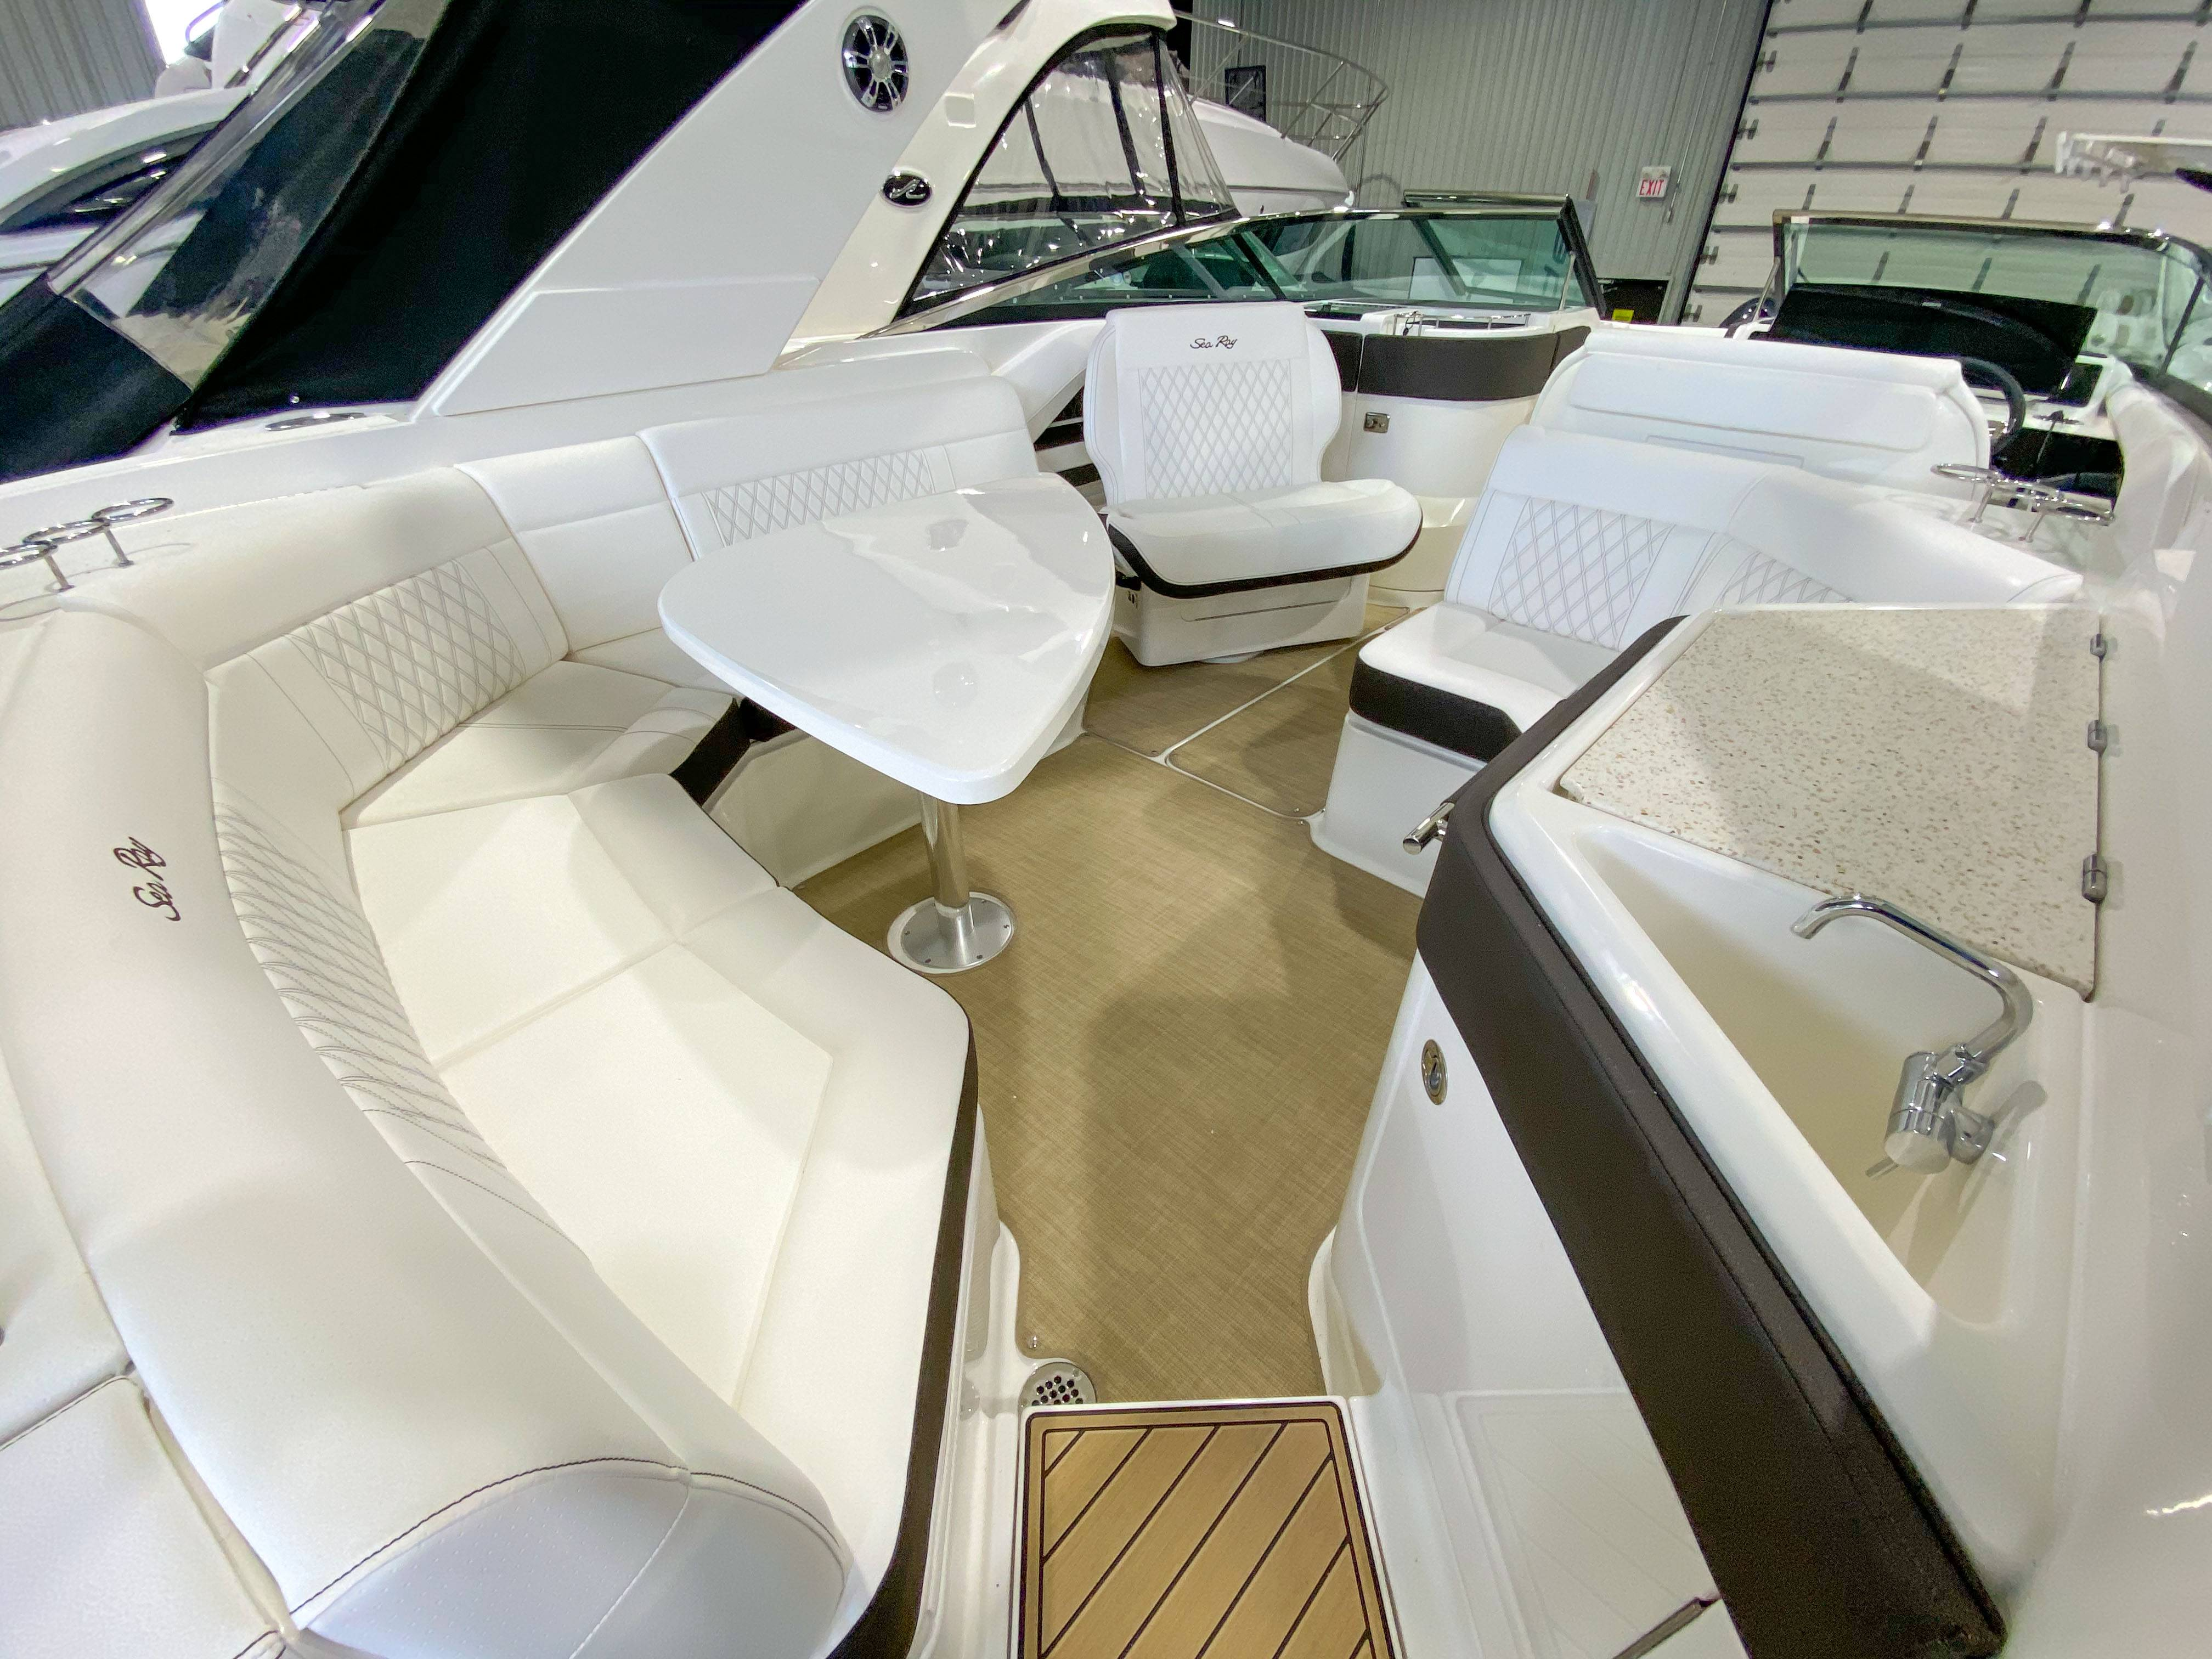 2021 Sea Ray boat for sale, model of the boat is SLX 310 & Image # 12 of 24